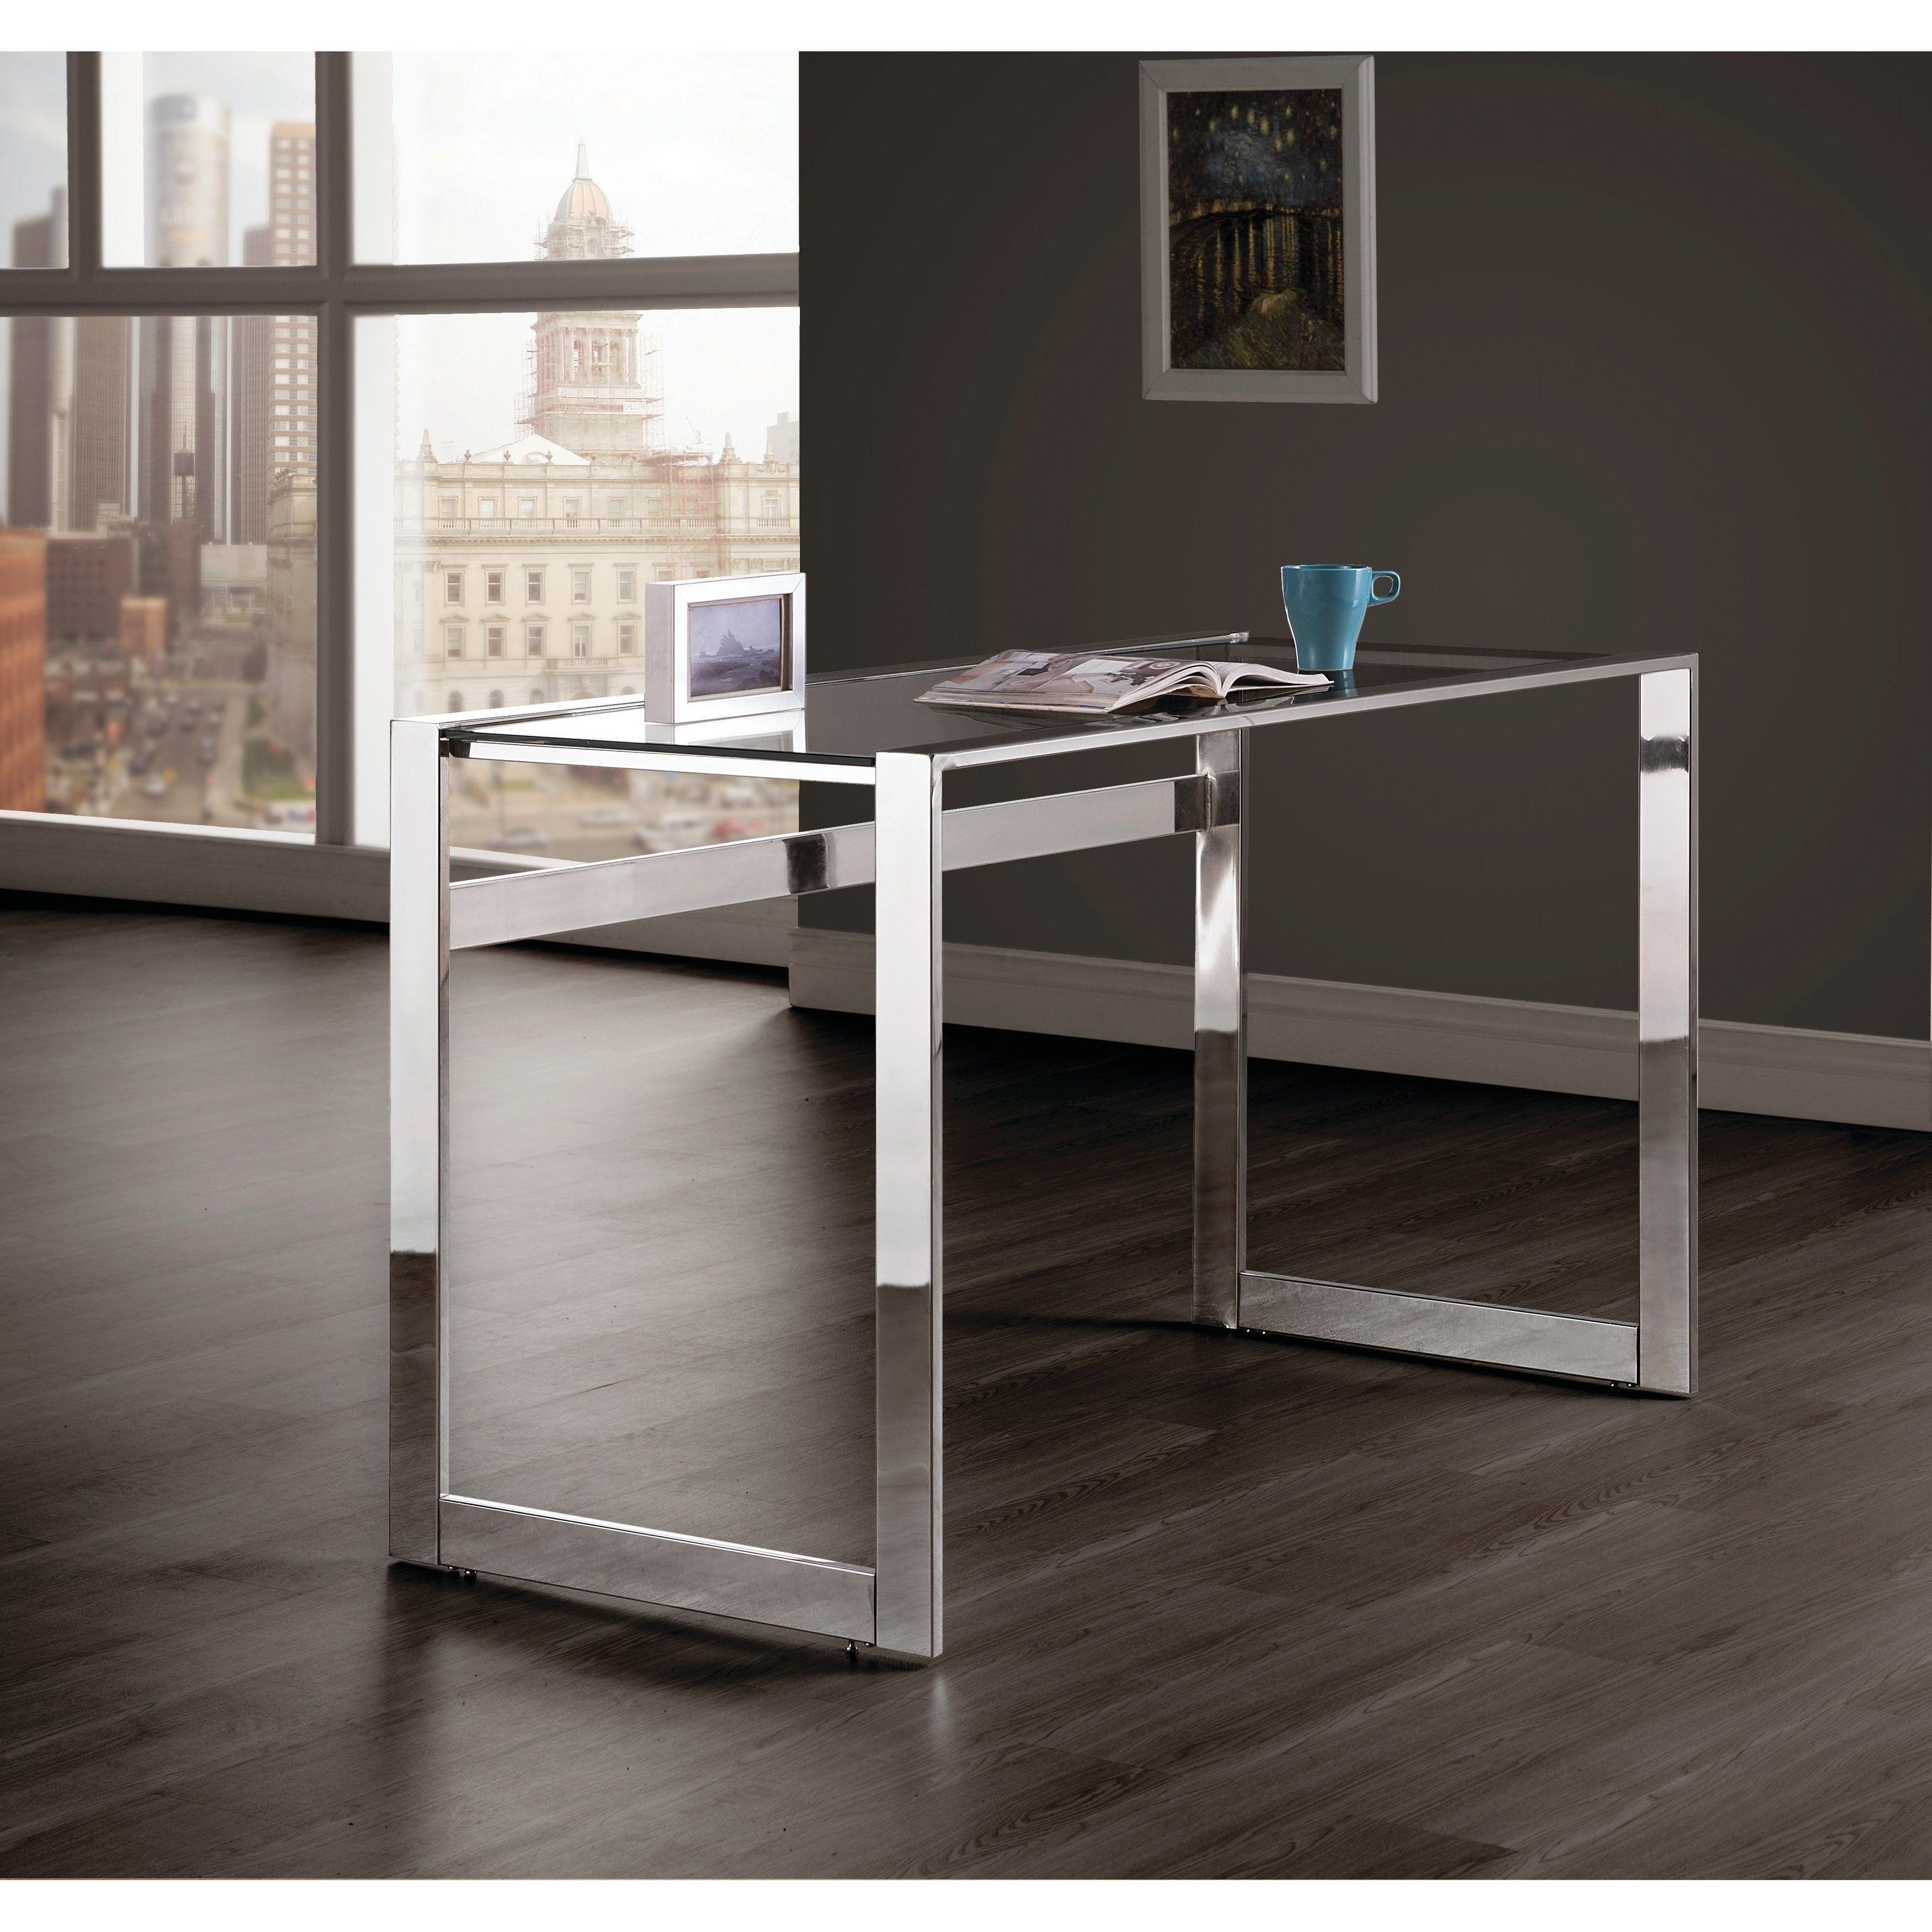 2019 Silver Orchid Ipsen Contemporary Glass Top Coffee Tables In Silver Orchid Ipsen Modern Chrome And Glass Top Writing Desk (Gallery 6 of 20)